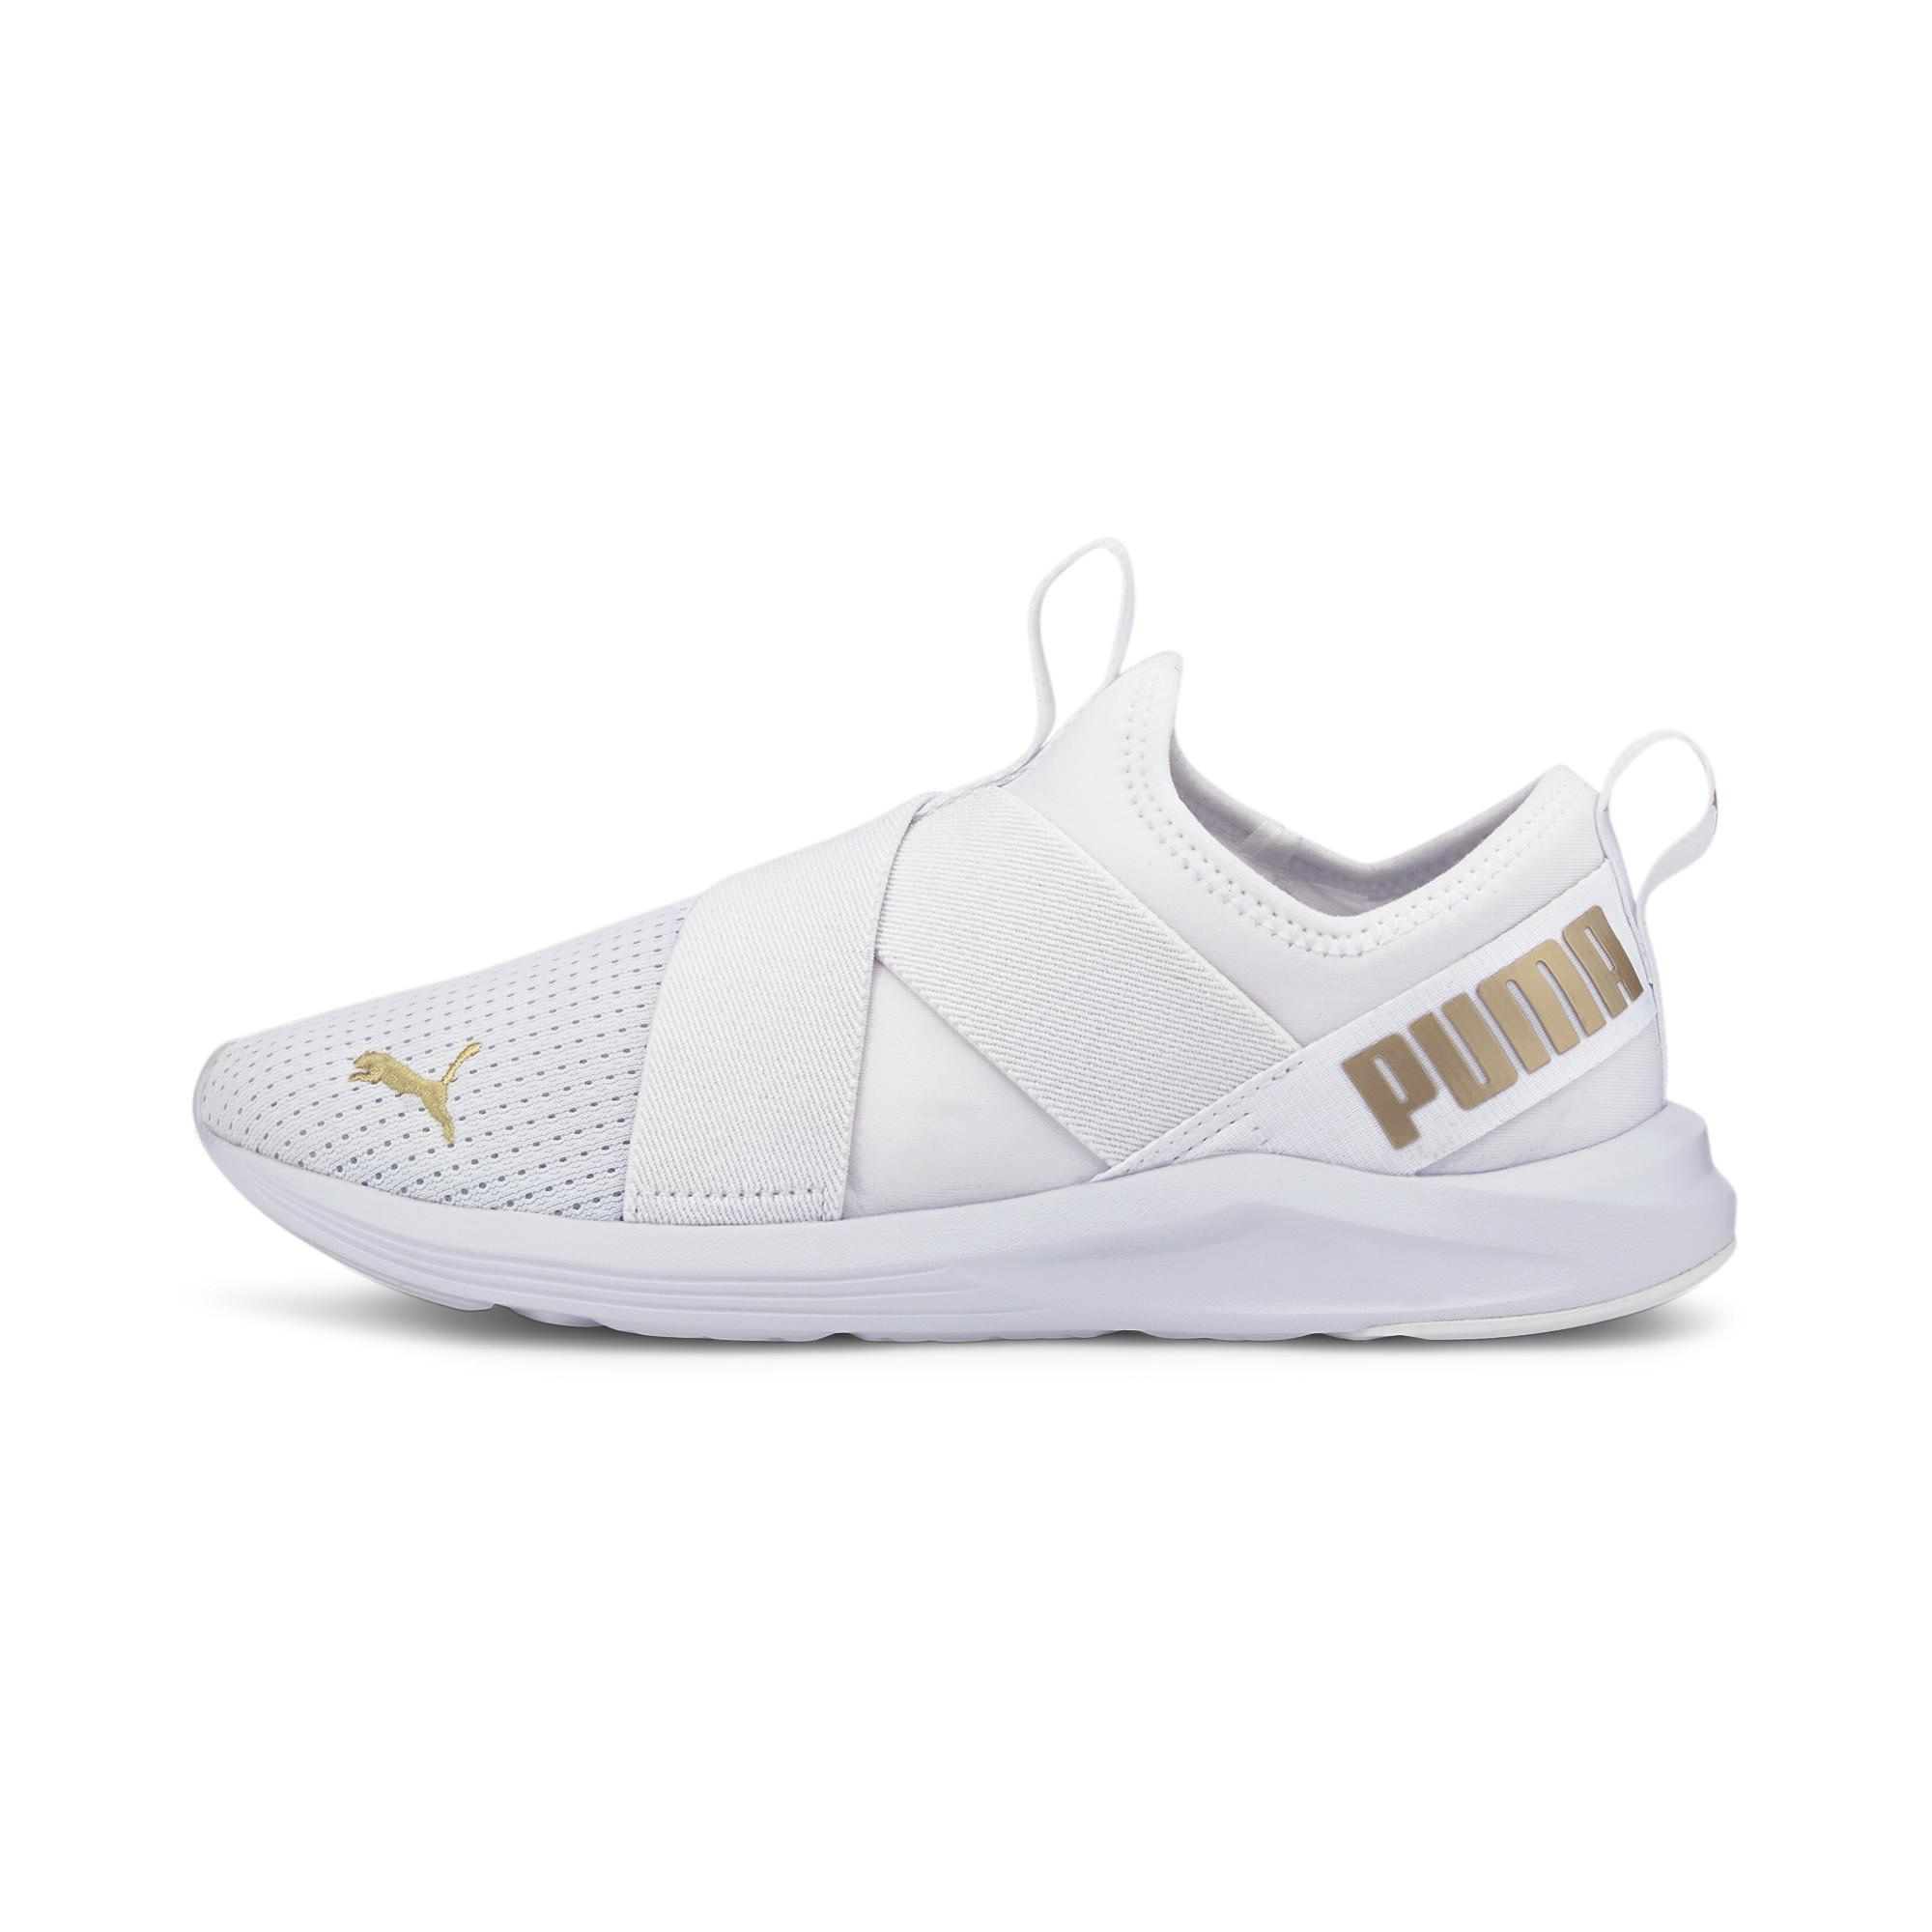 PUMA-Women-039-s-Prowl-Slip-On-Training-Shoes thumbnail 11